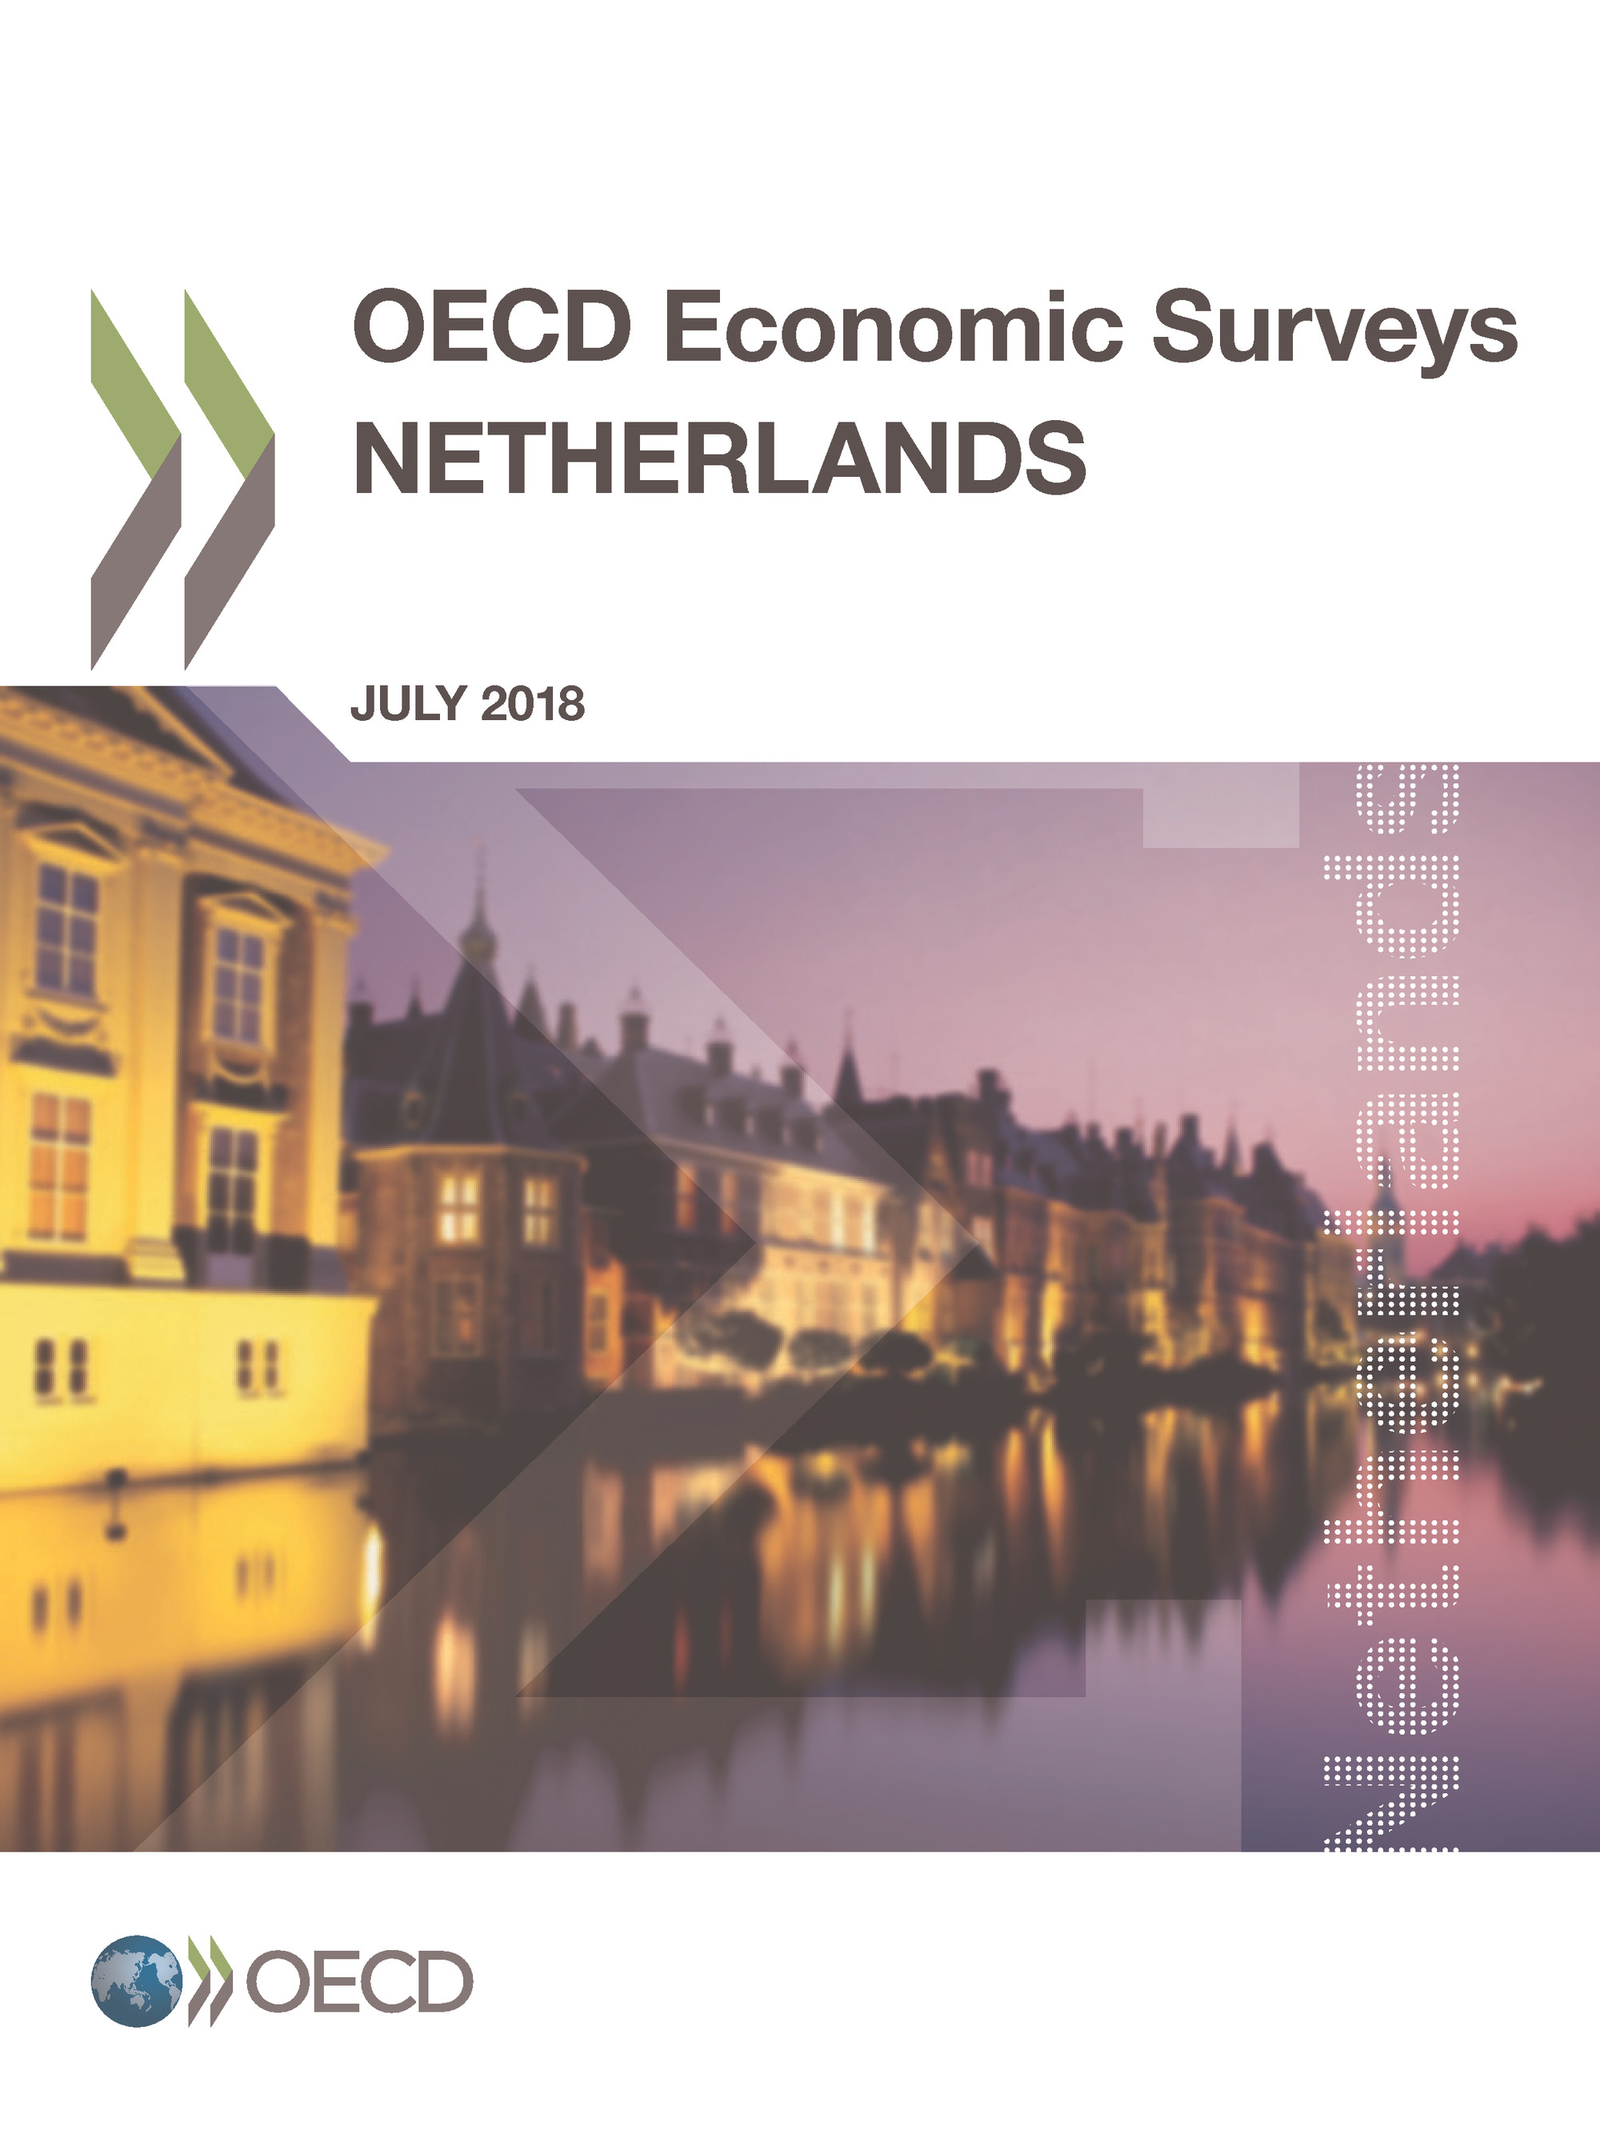 OECD Economic Surveys: Netherlands 2018